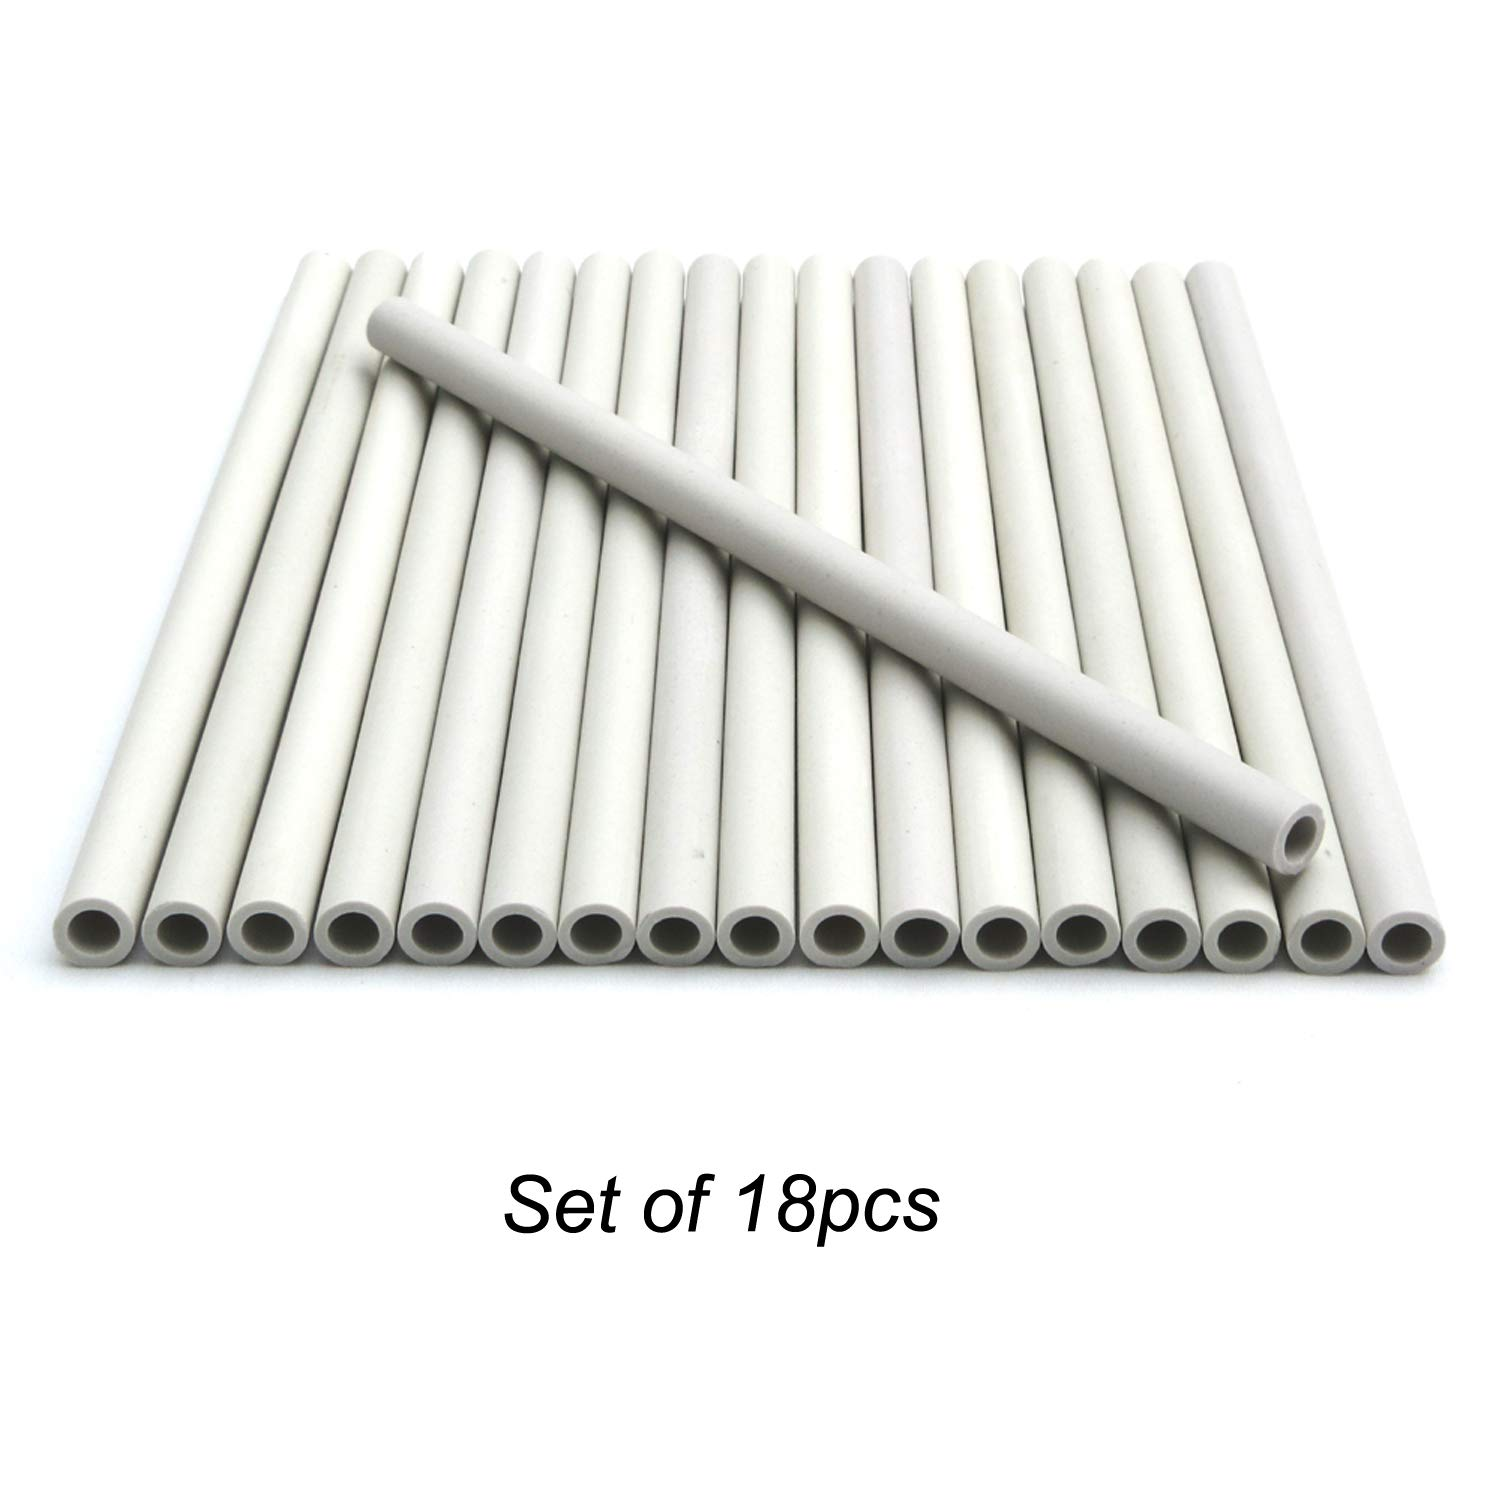 Direct store Parts DF-18 Replacement Gas Grill Ceramic Radiants, BBQ Grill Ceramic Rods for DCS Heat Plates, for DCS Grill 245398, DCSCT, 9.5'' long (18)